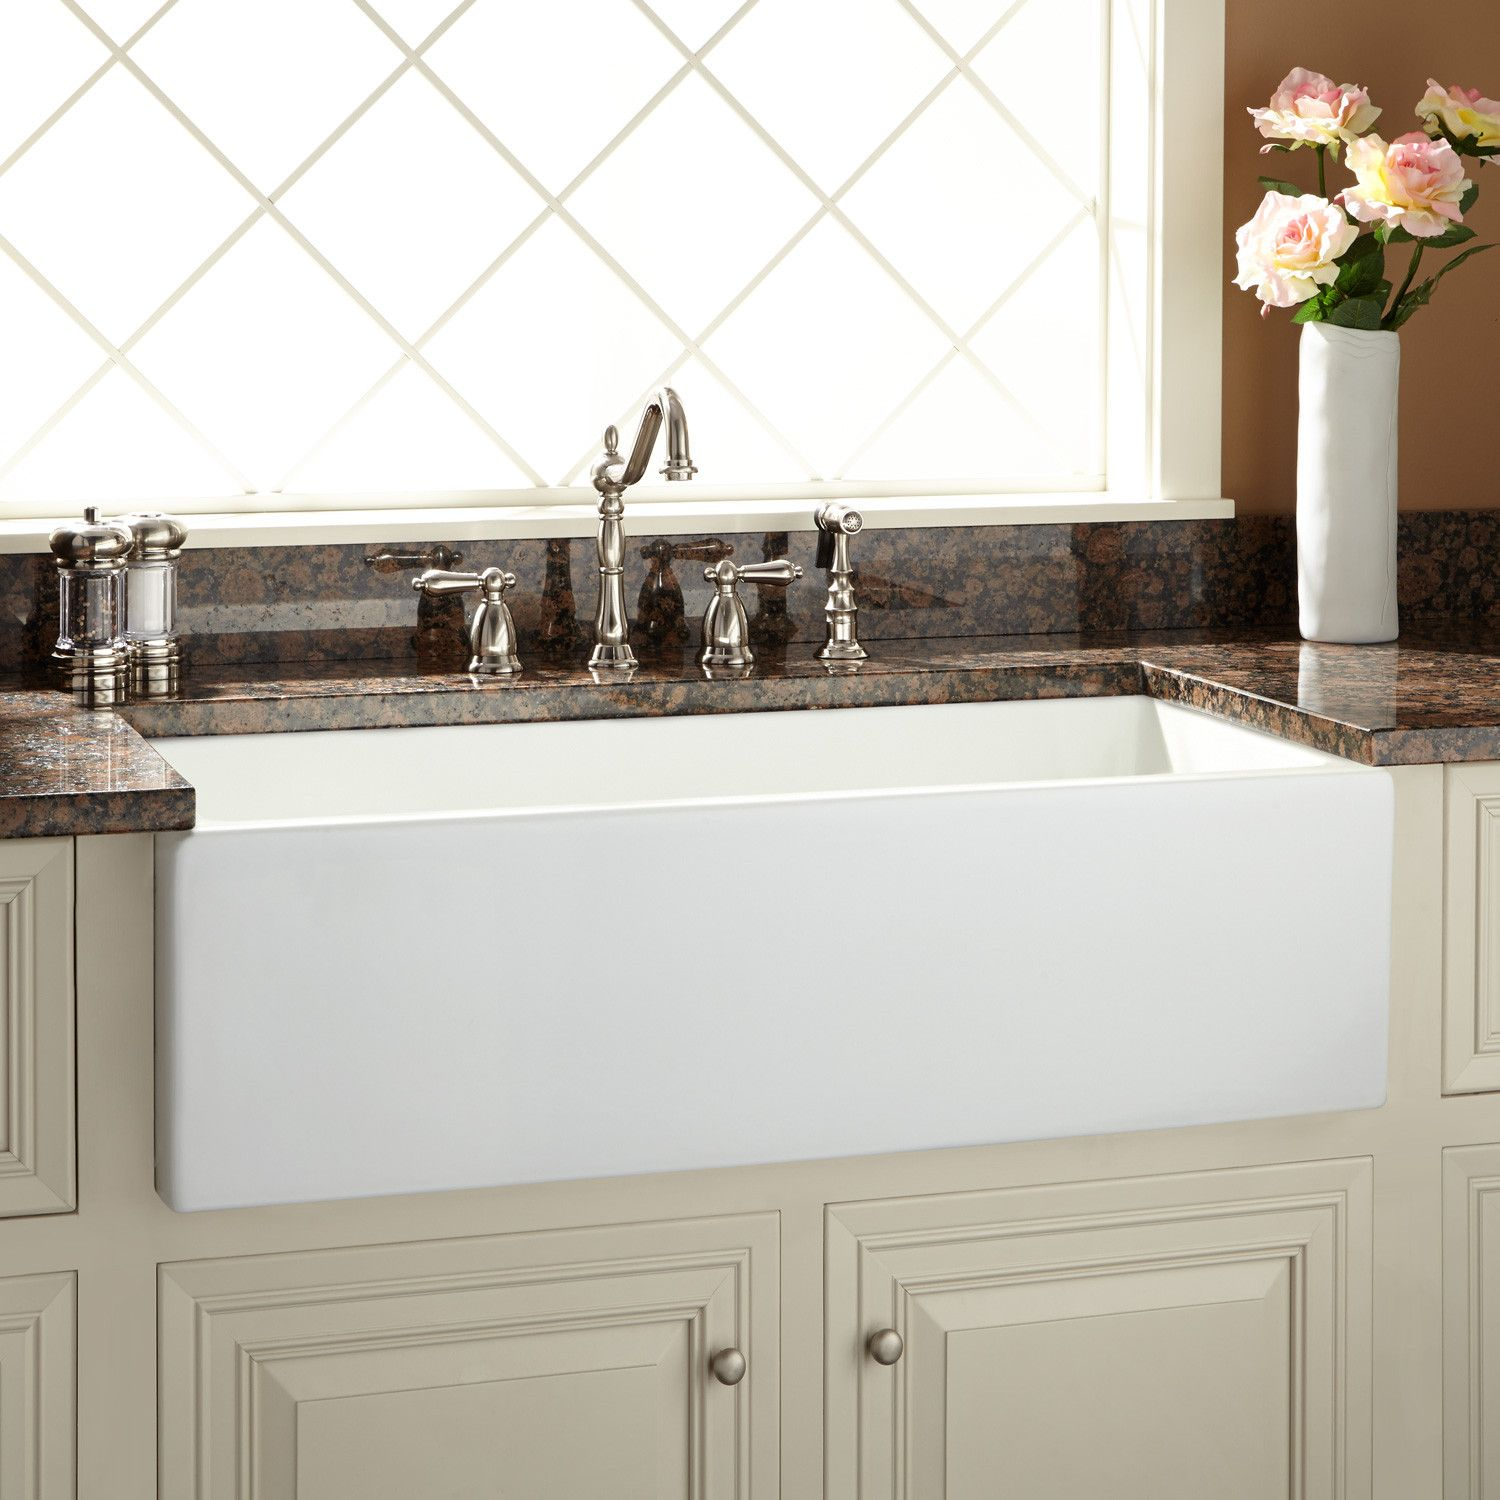 Latoscana Farmhouse Sink 36 36 Farmhouse Sink Home Decor